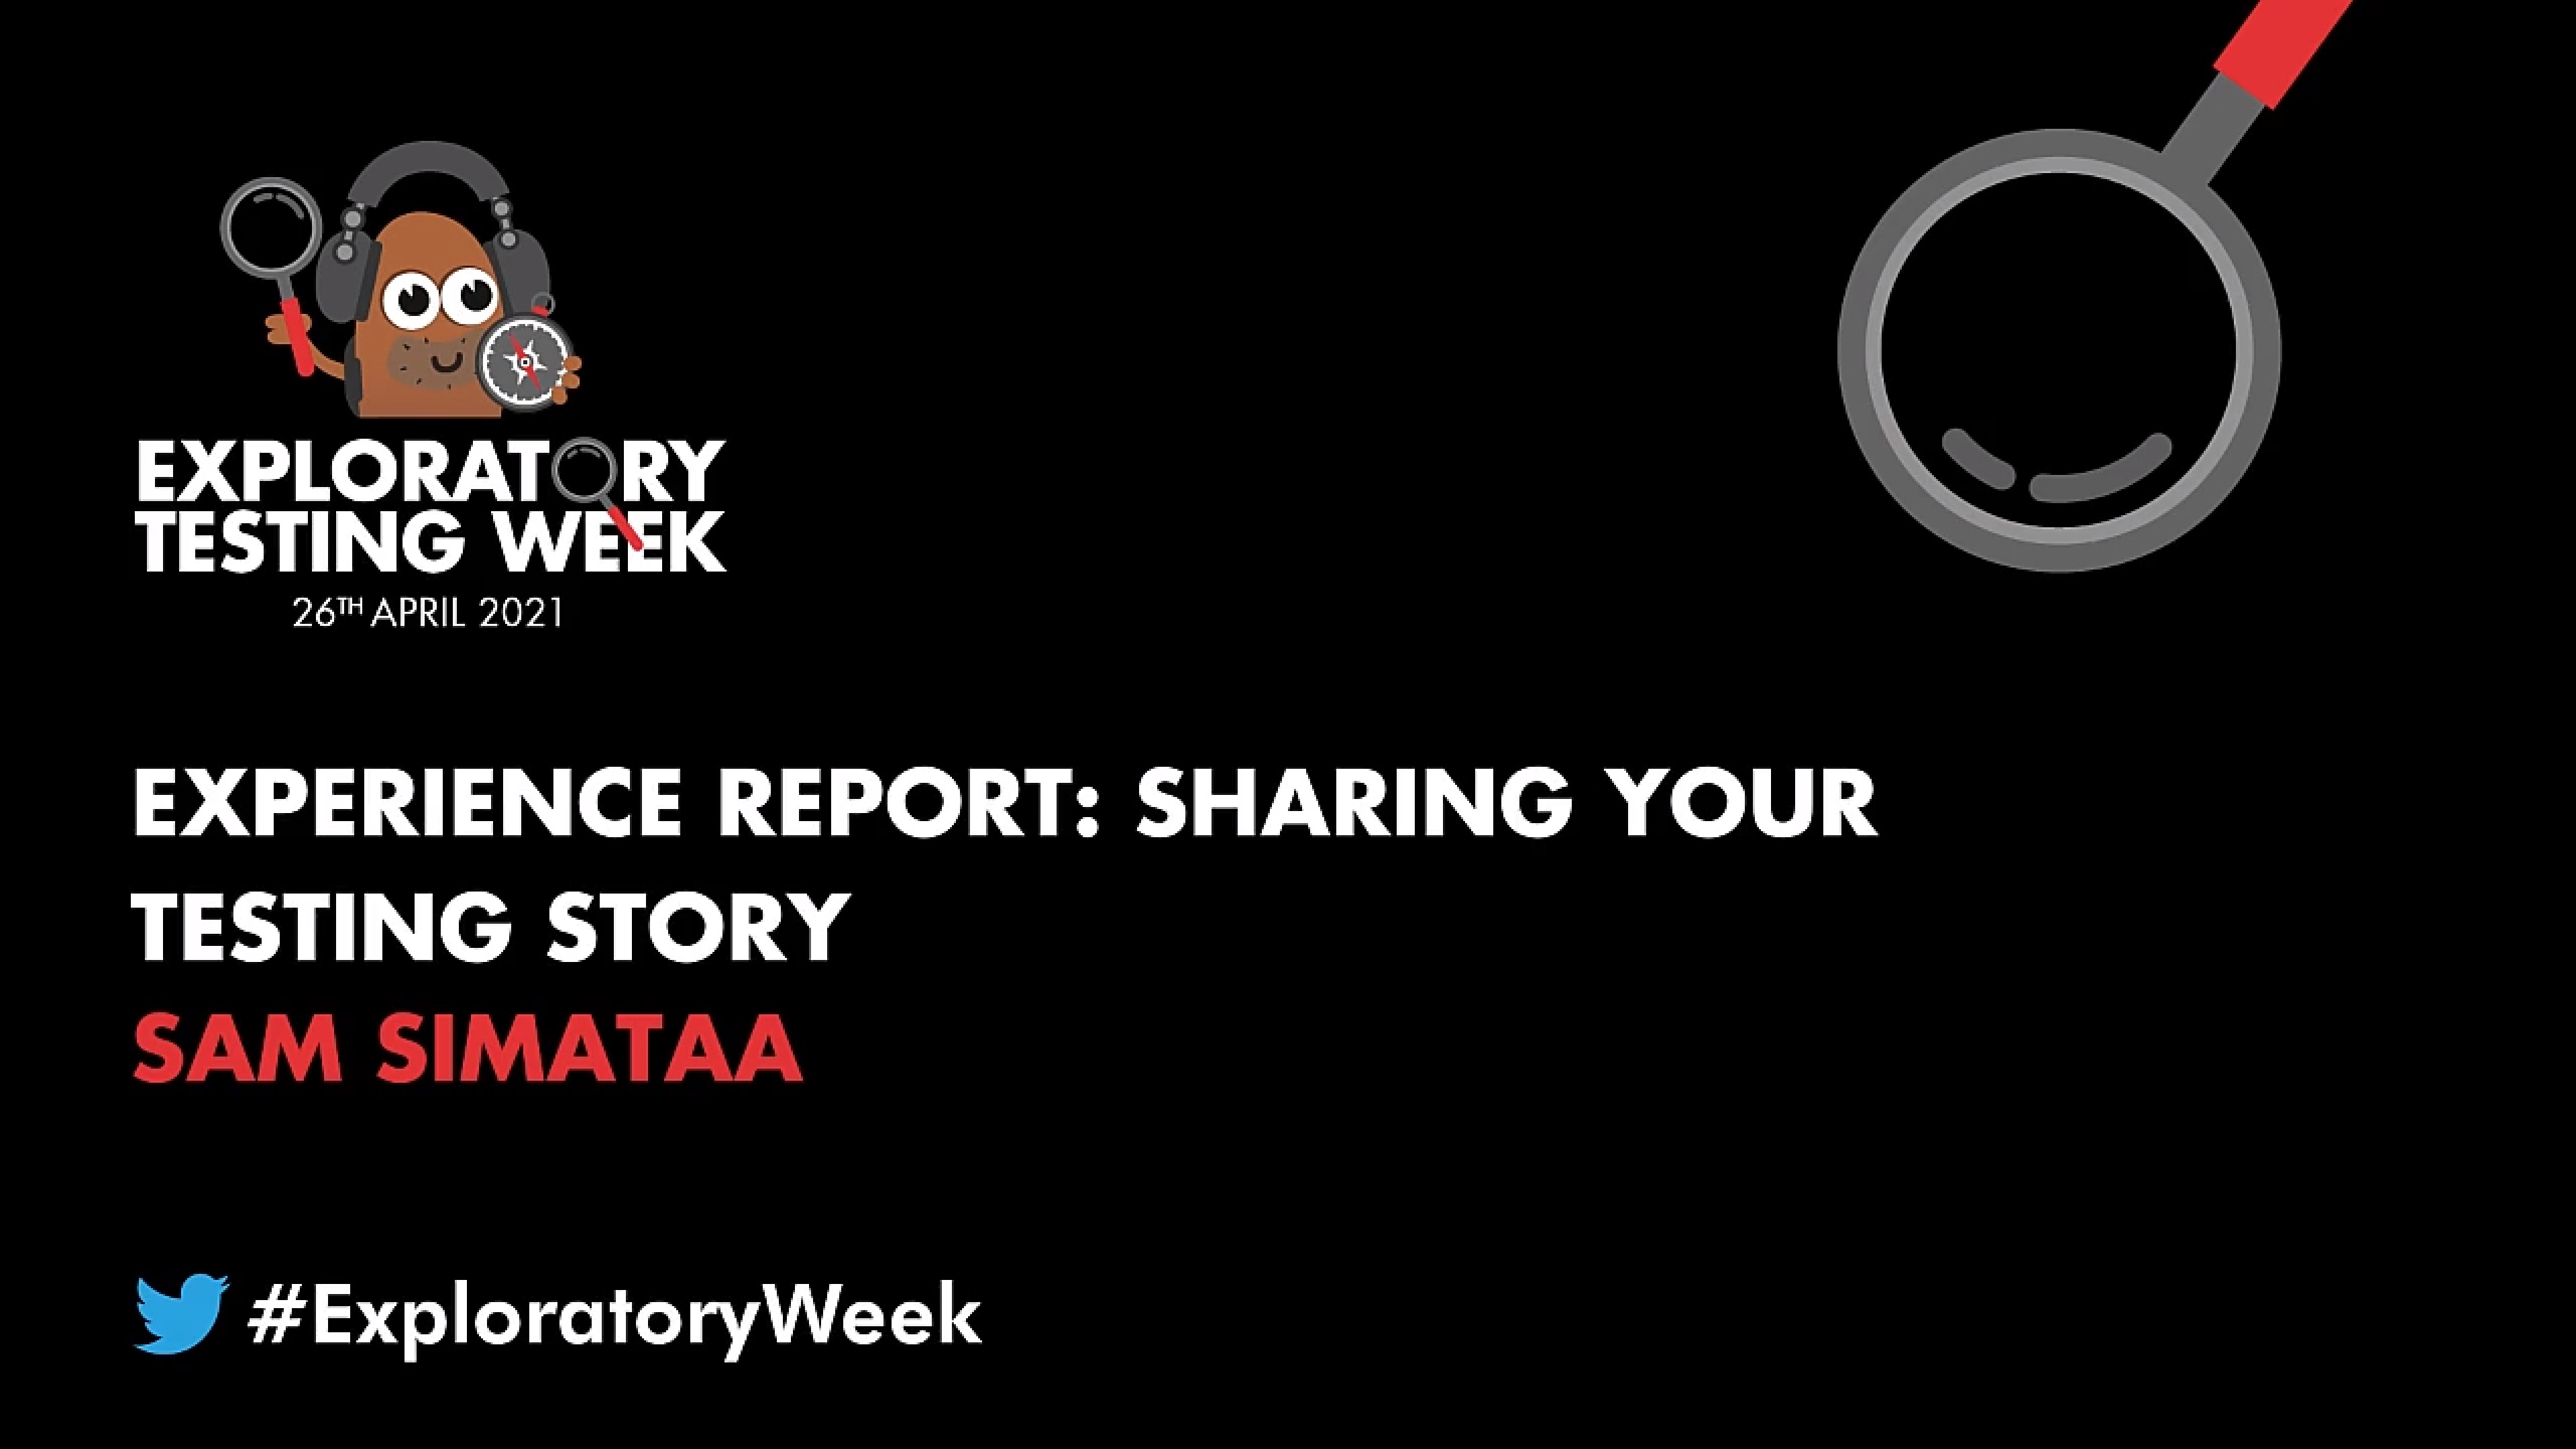 Experience Report: Sharing Your Testing Story with Sam Simataa